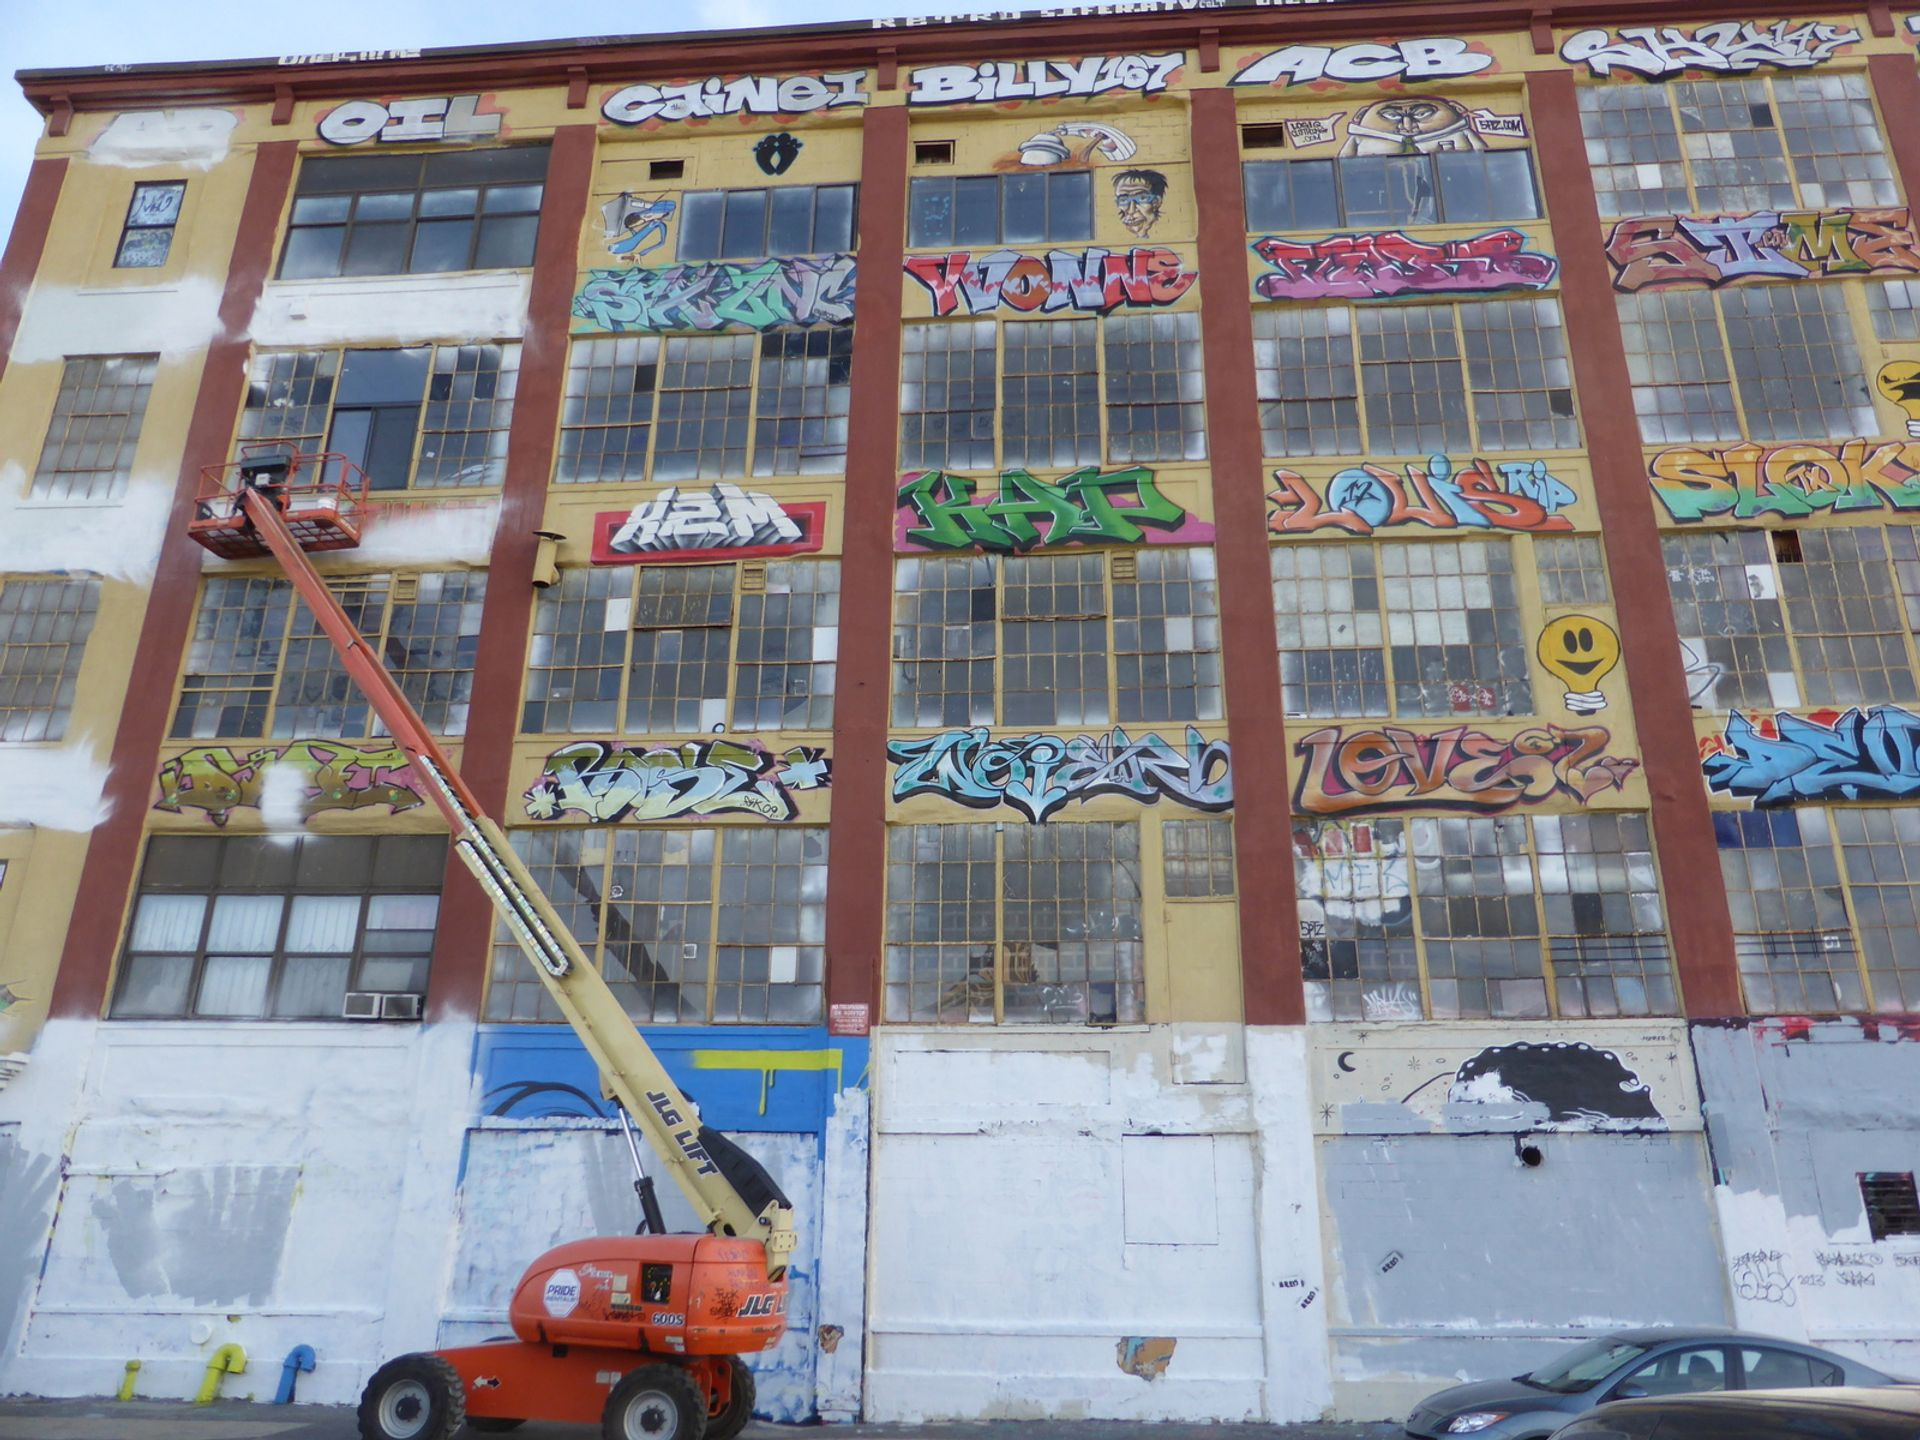 """Judge Frederic Block described developer Jerry Wolkoff's whitewashing of the 5Pointz artists' works as """"an act of pure pique and revenge for the nerve of the plaintiffs to sue to attempt to prevent the destruction of their art"""" Photo: © duncan c via Flickr"""